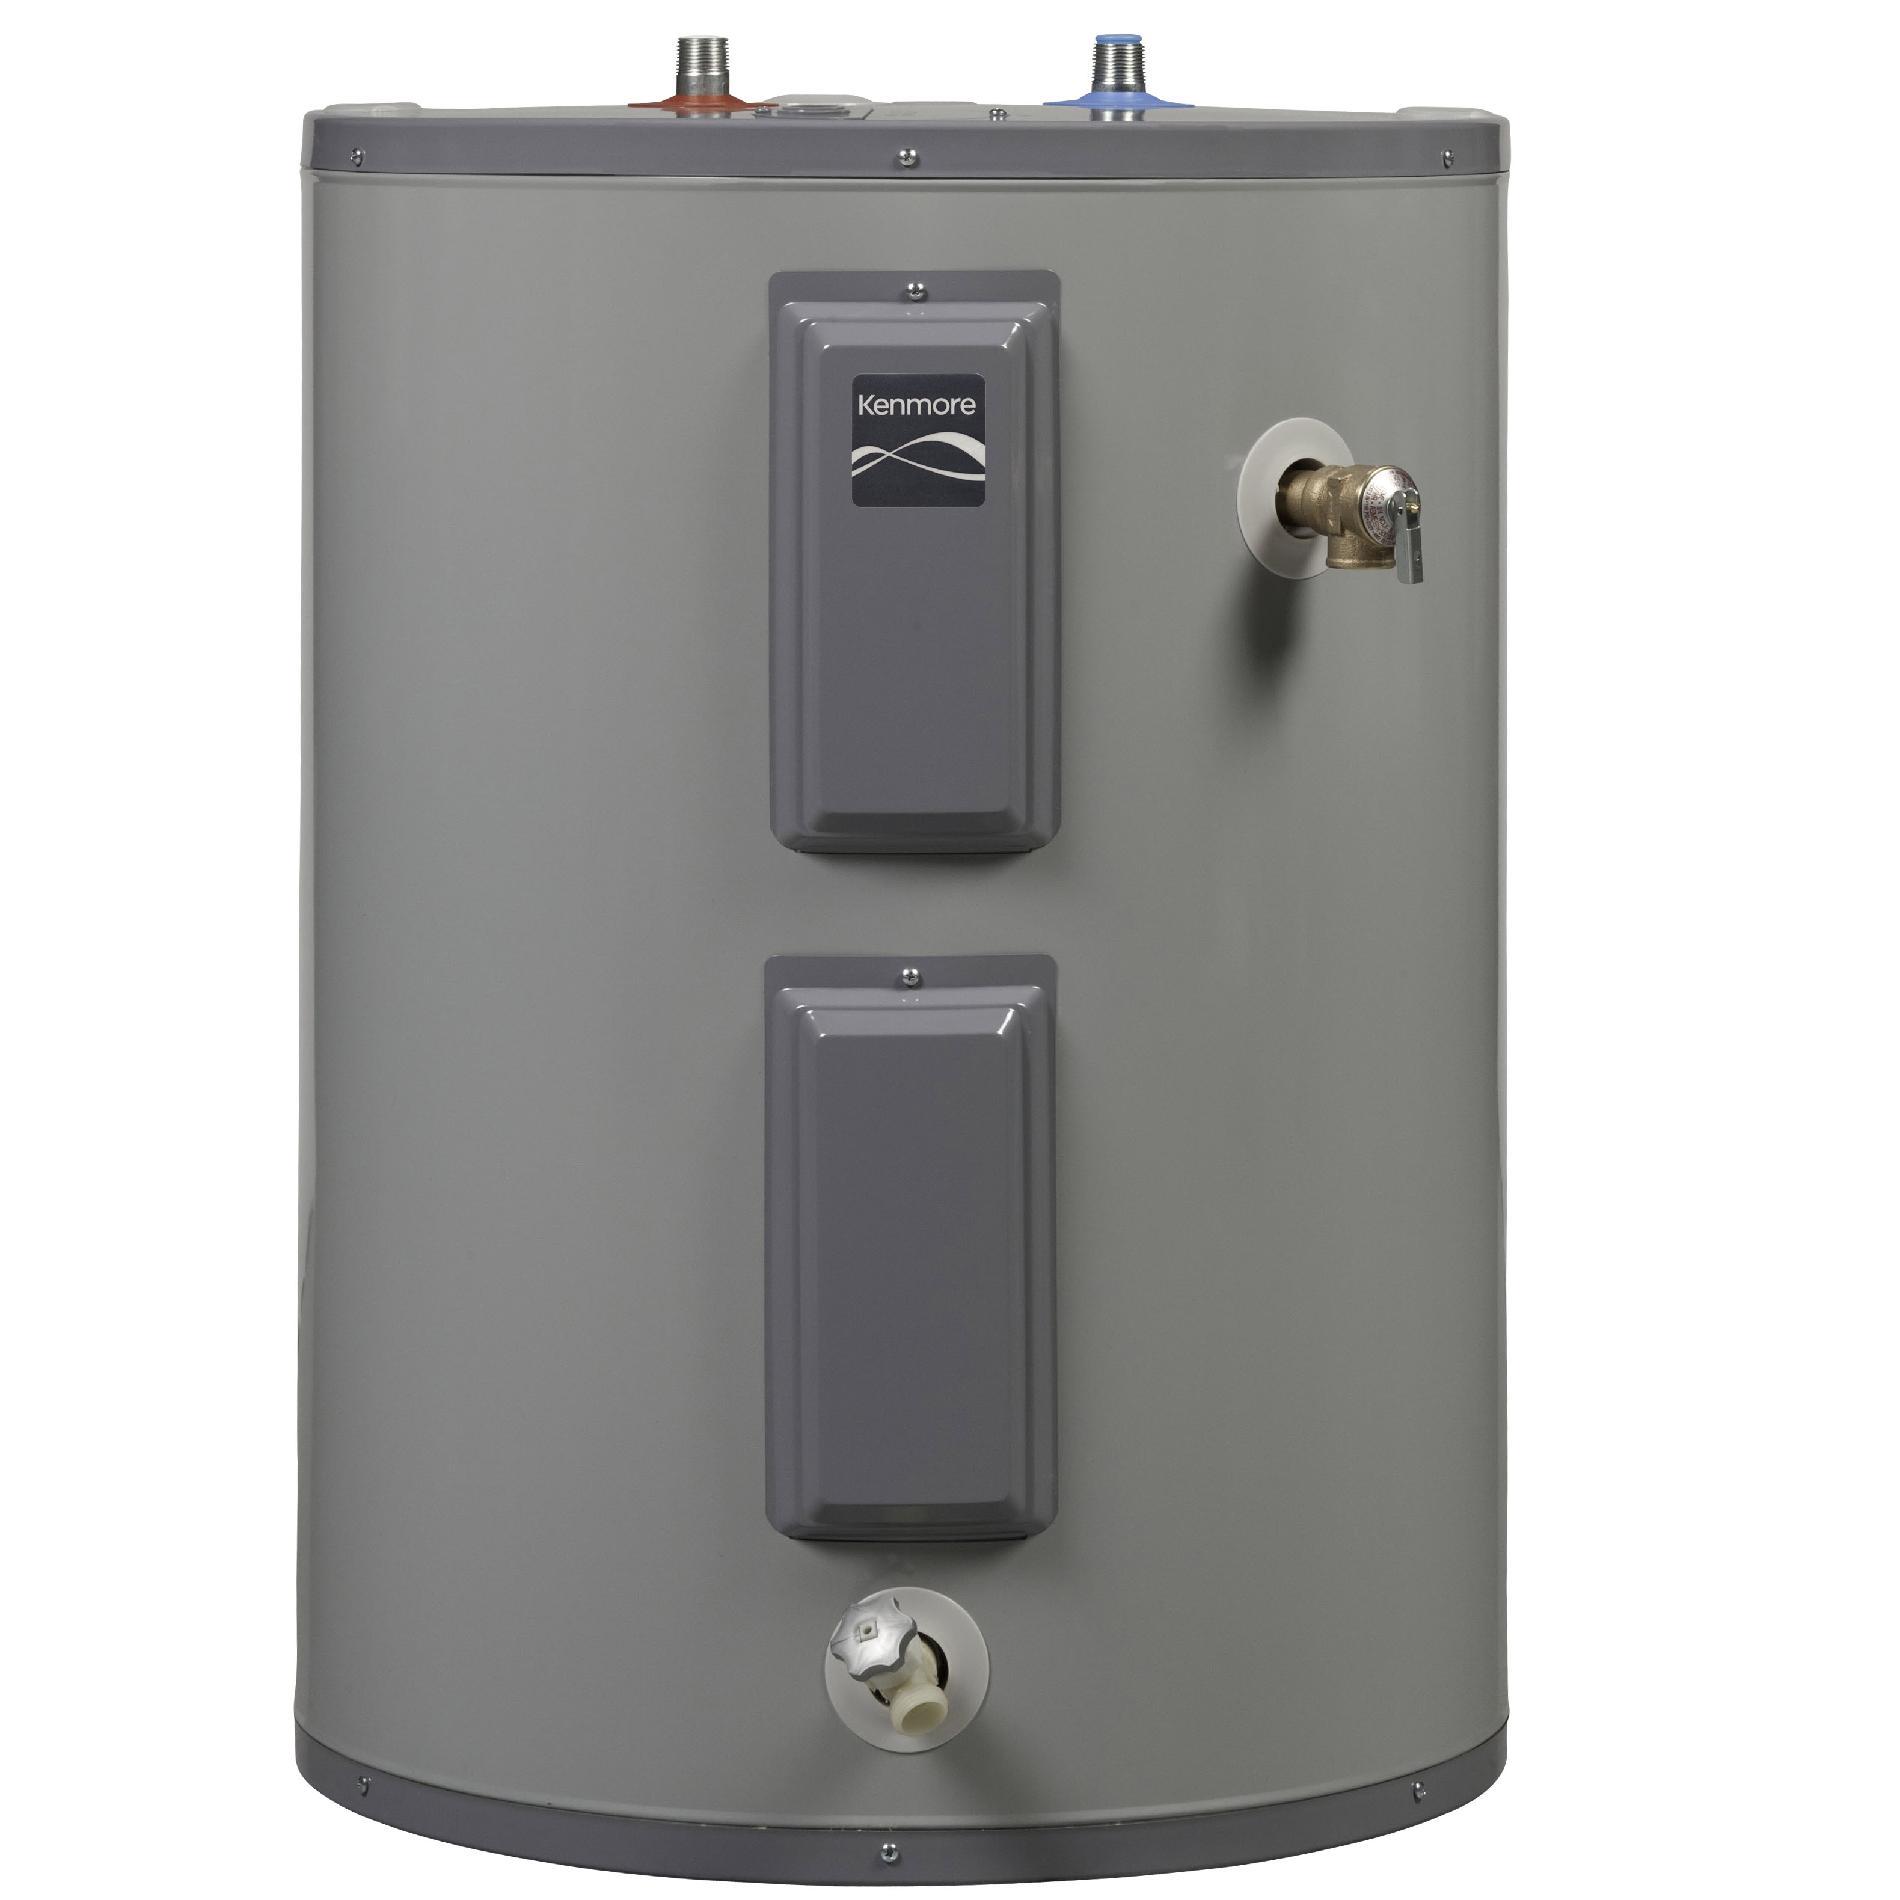 Kenmore 38 gal. Short 9-Year Electric Water Heater - Limited Availability